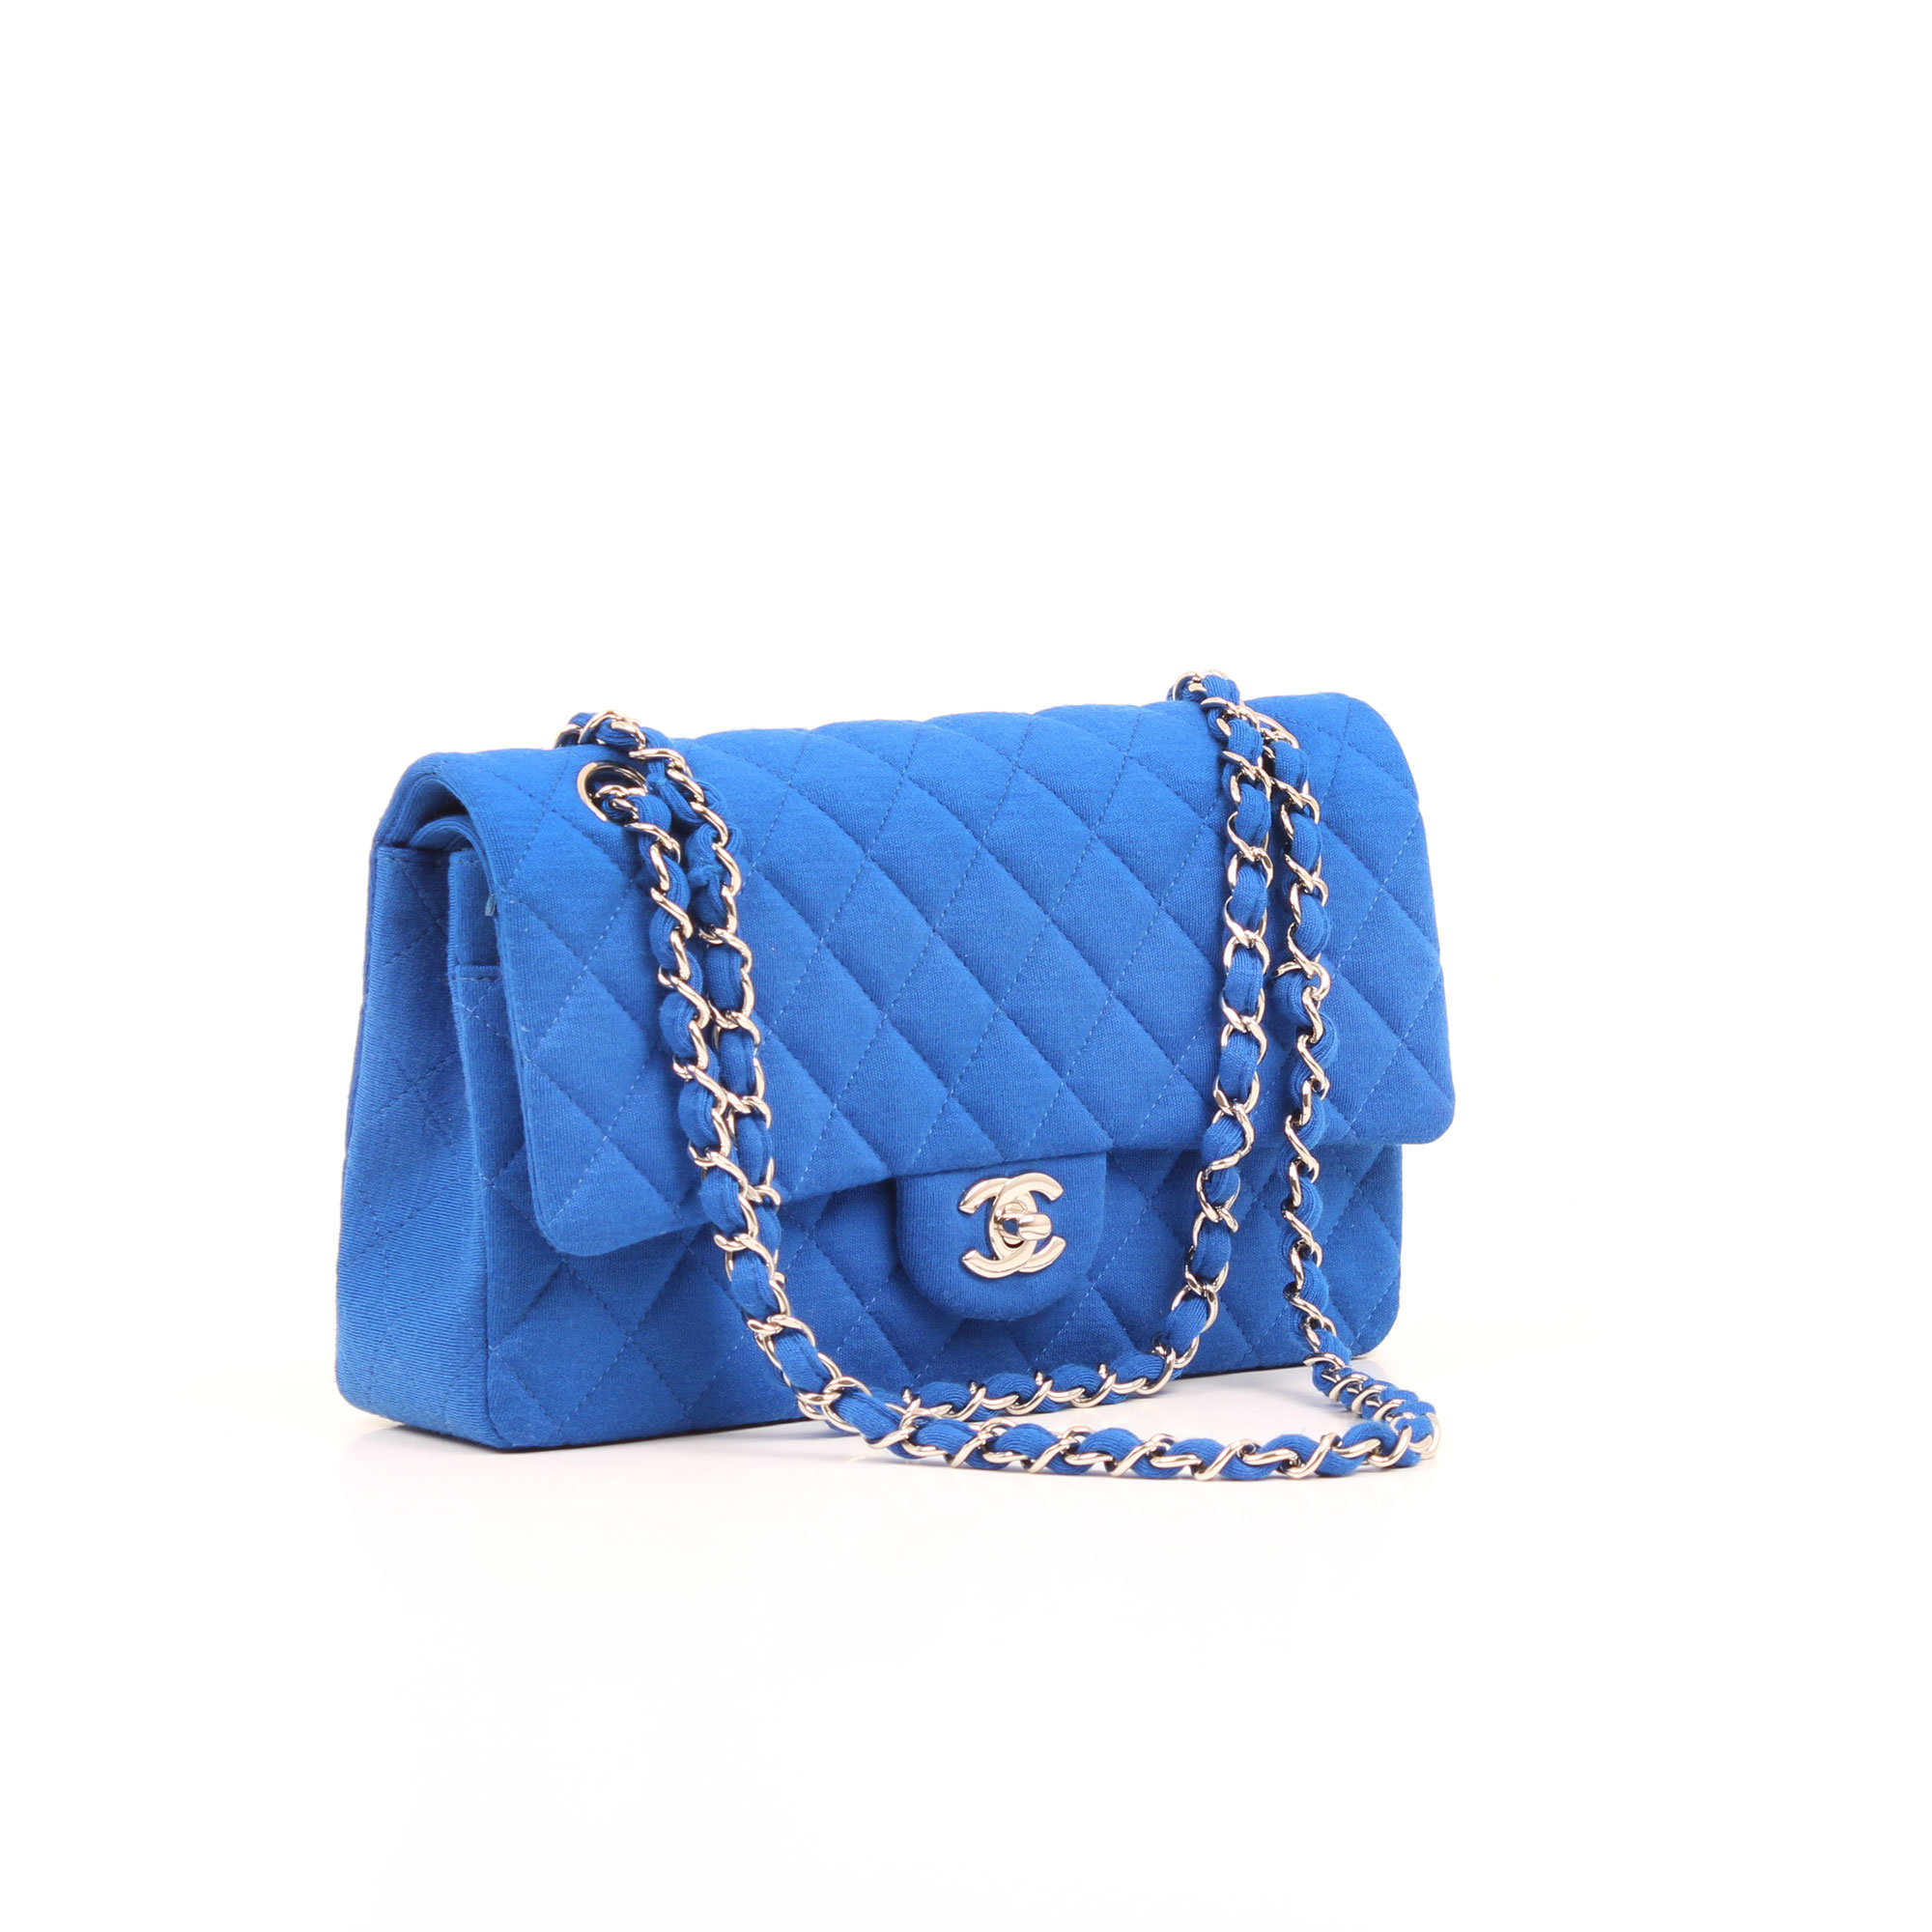 2f7519487d89 General image of chanel classic jersey blue quilted timeless double flap bag